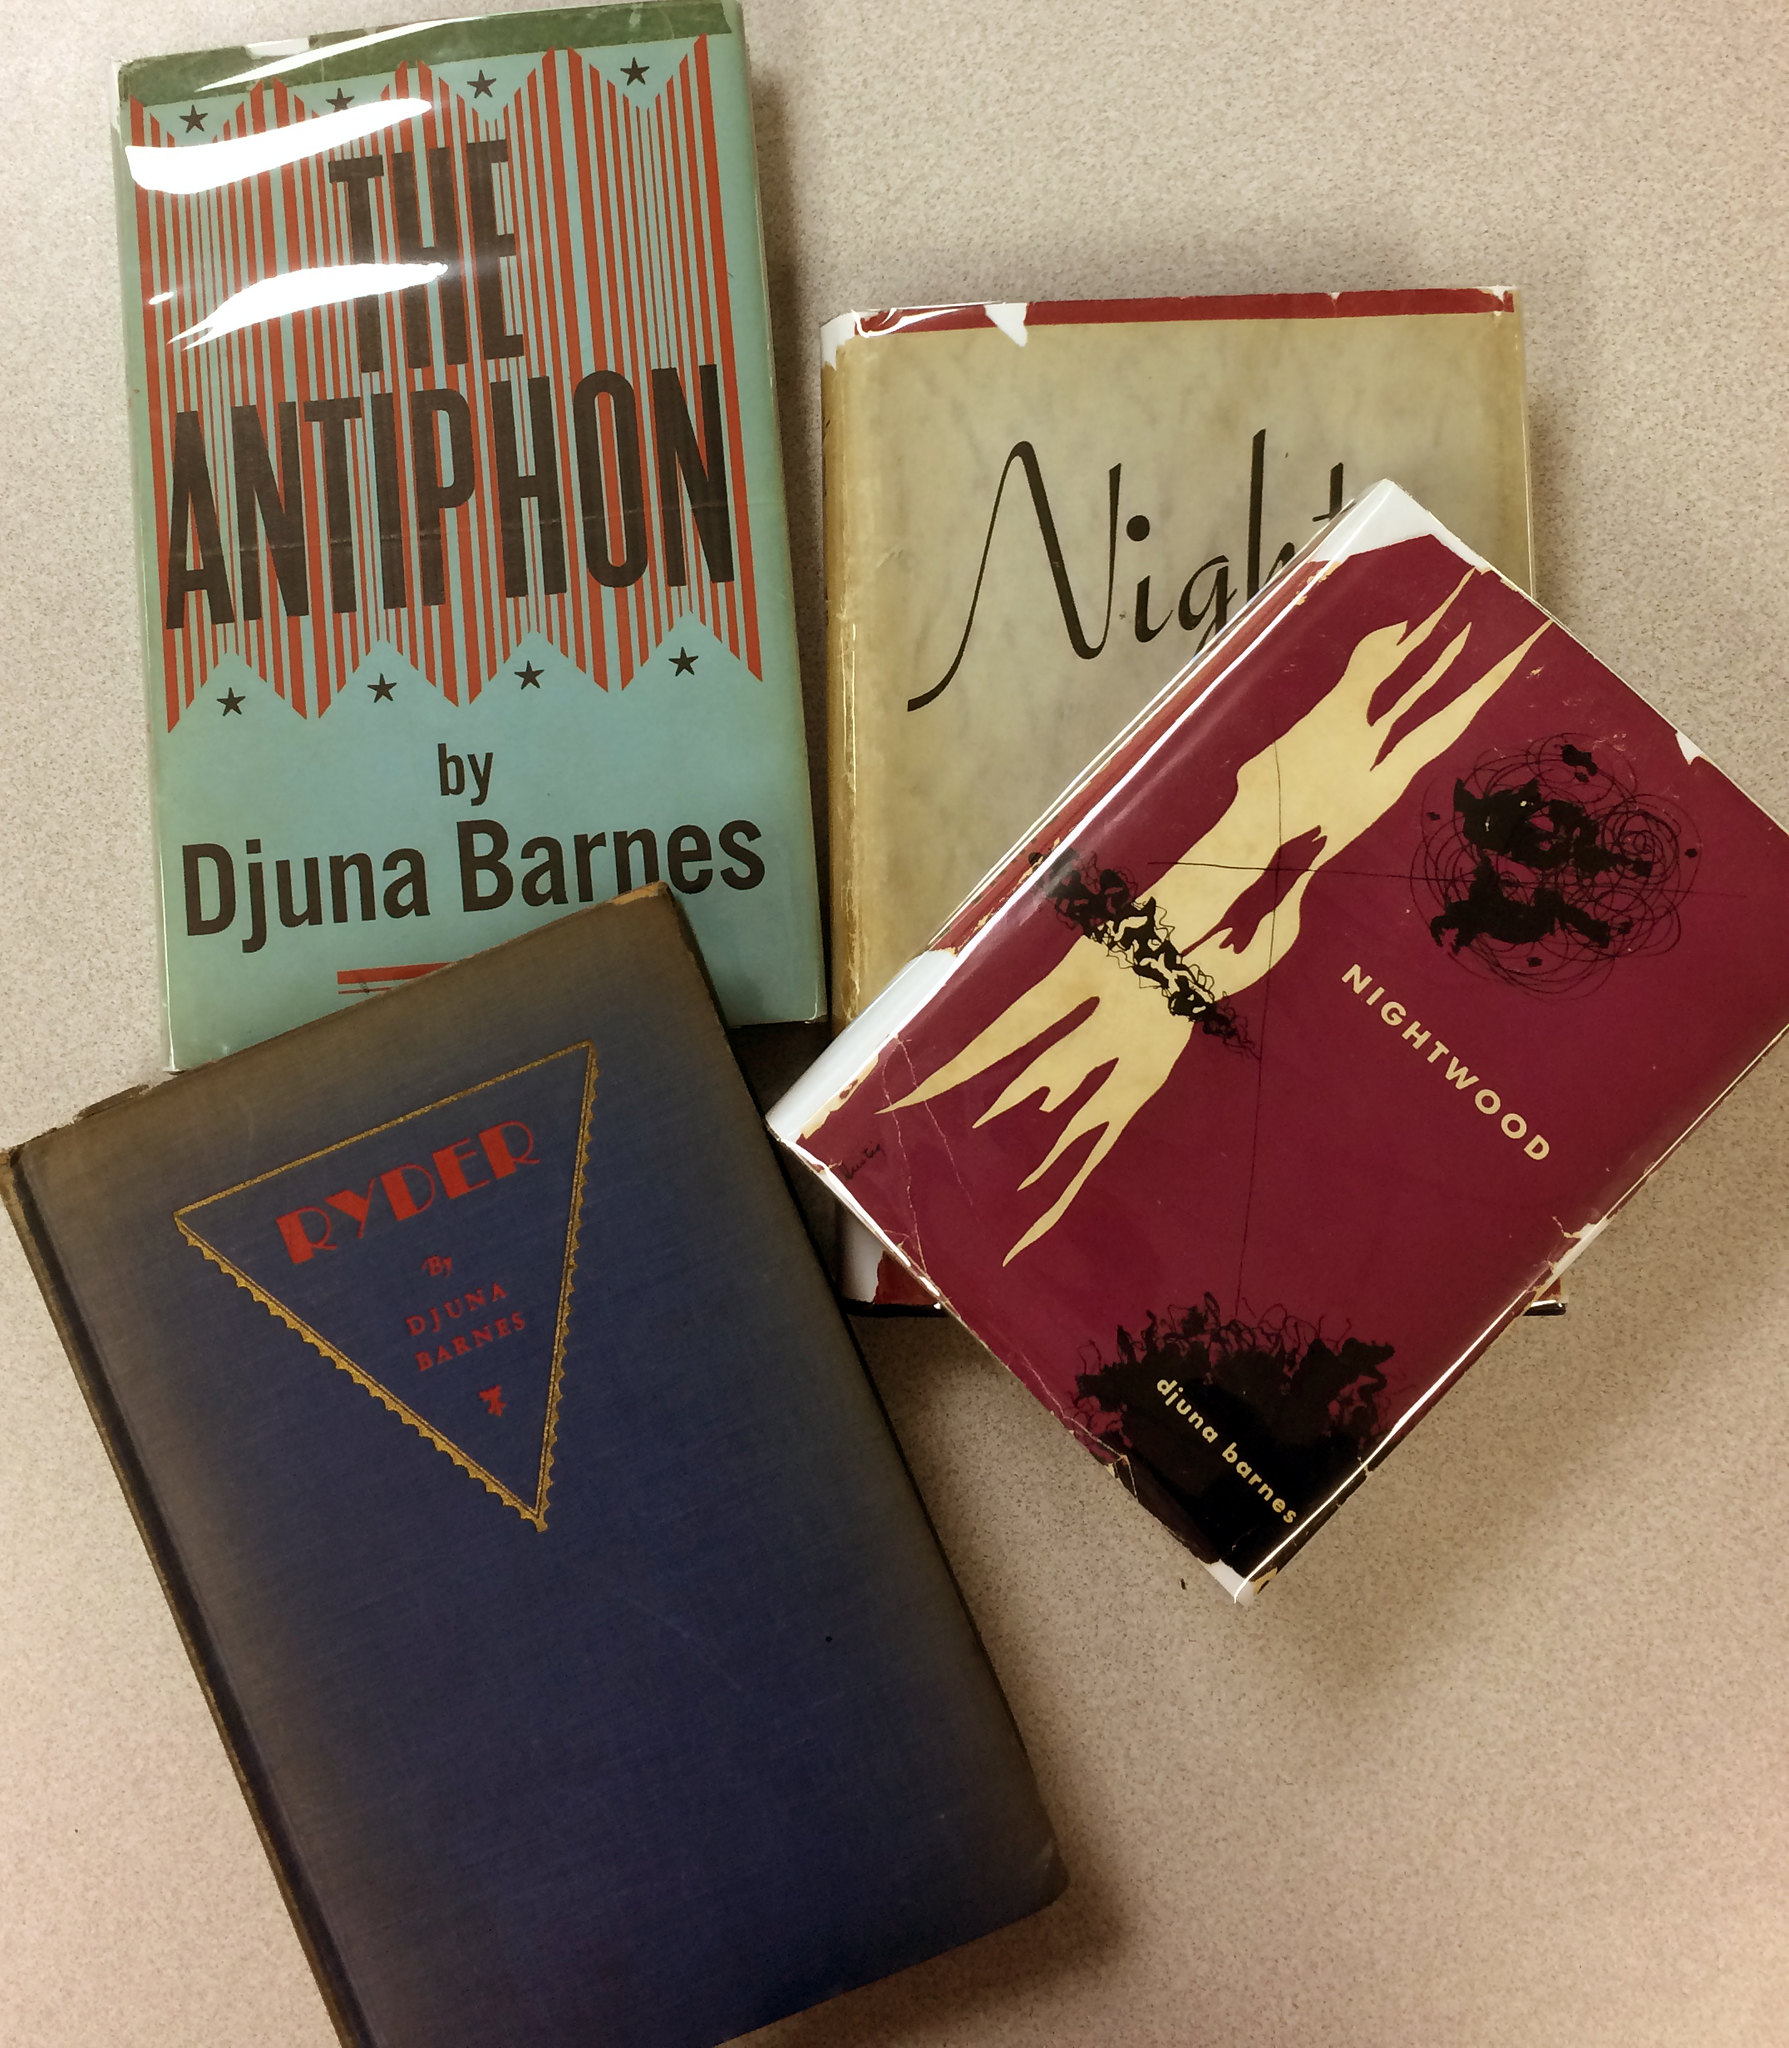 Djuna Barnes' The Antiphon, Nightwood, And Ryder From The Robert Giroux Book  Collection